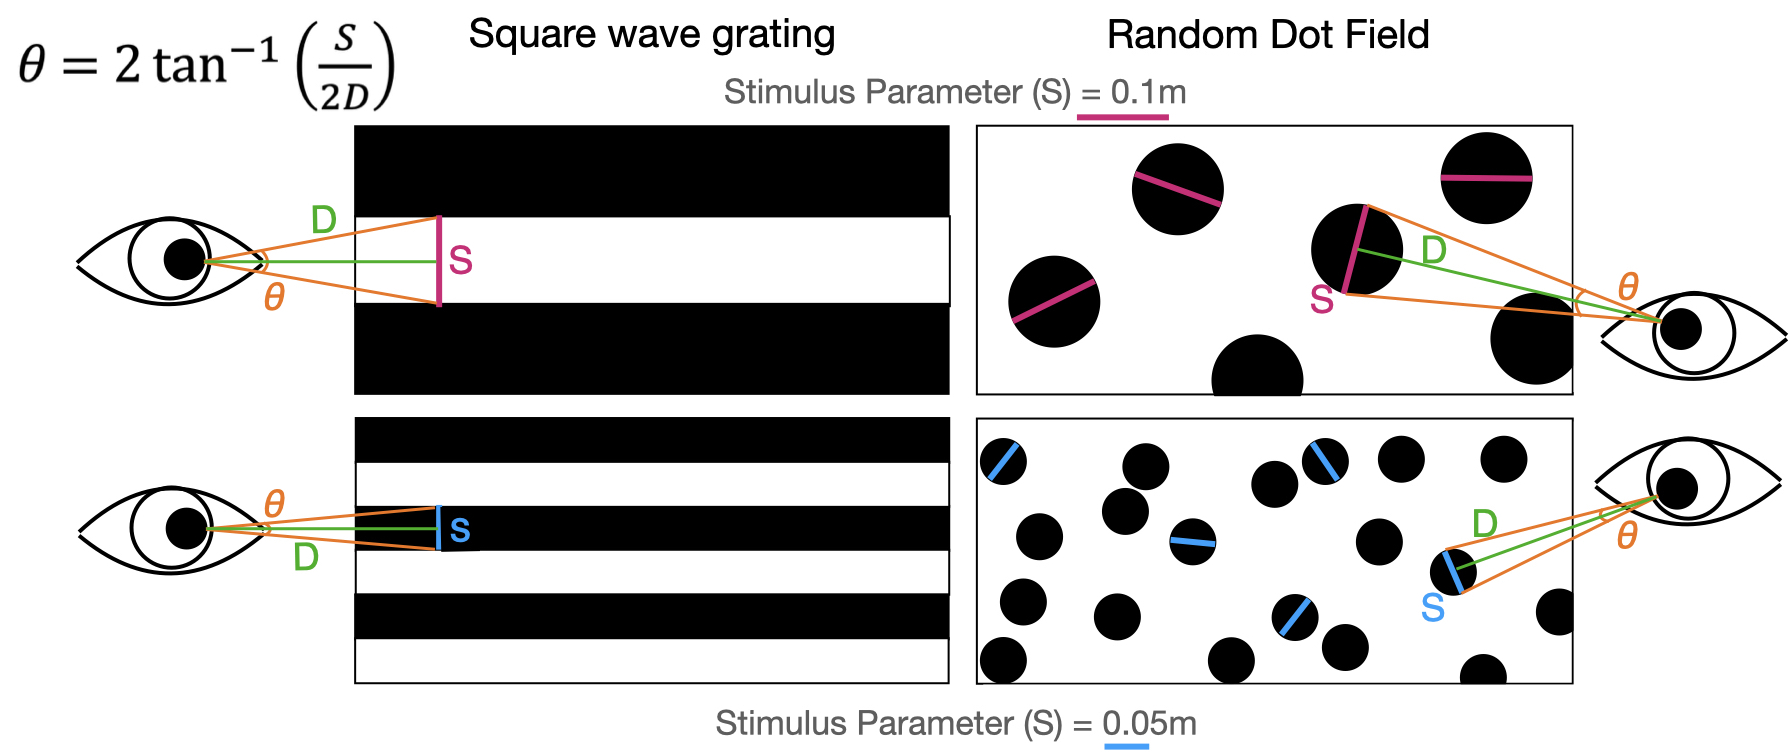 Visual angles can be calculated using the size of a visual pattern (`stim_param`) and the distance to the pattern. Larger patterns at shorter distances produce larger visual angles. For dot stimuli, visual angles can be calculated independent of stimulus orientation.